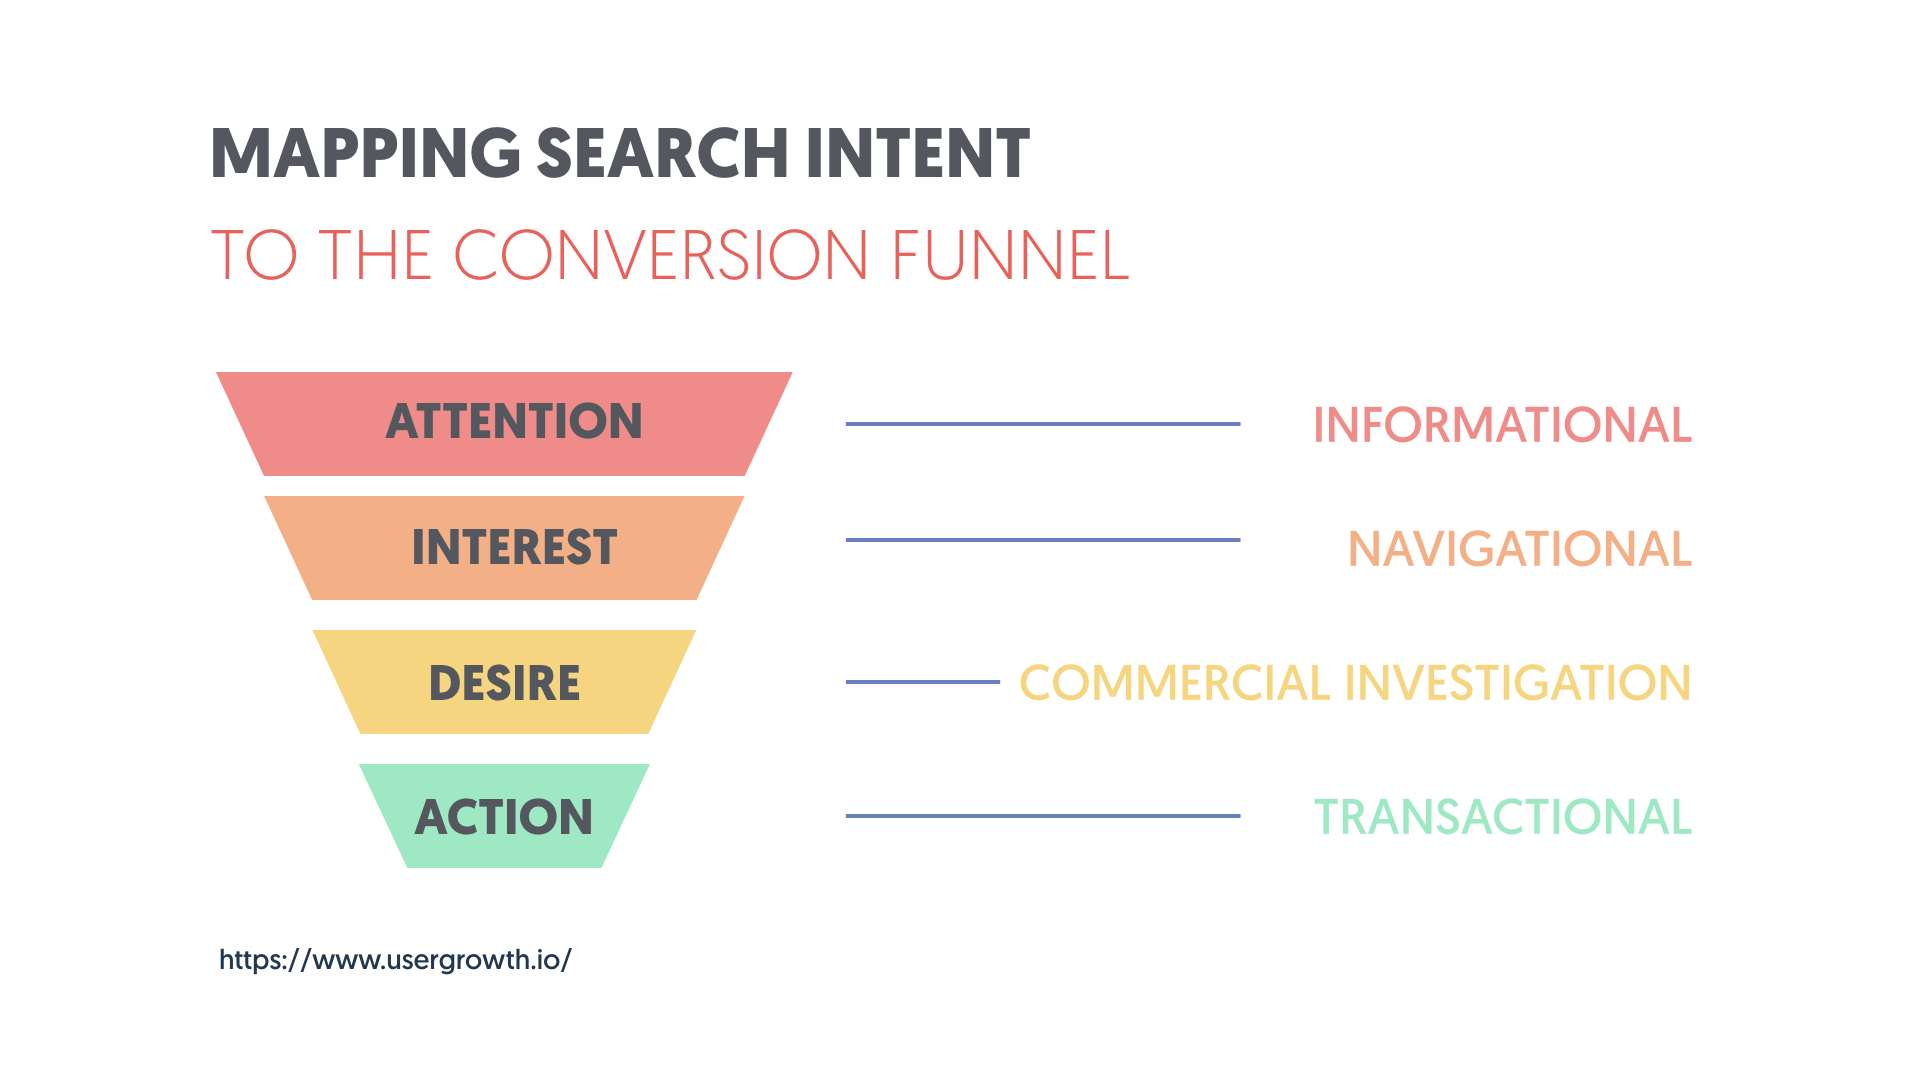 Mapping Search Intent to the Conversion Funnel